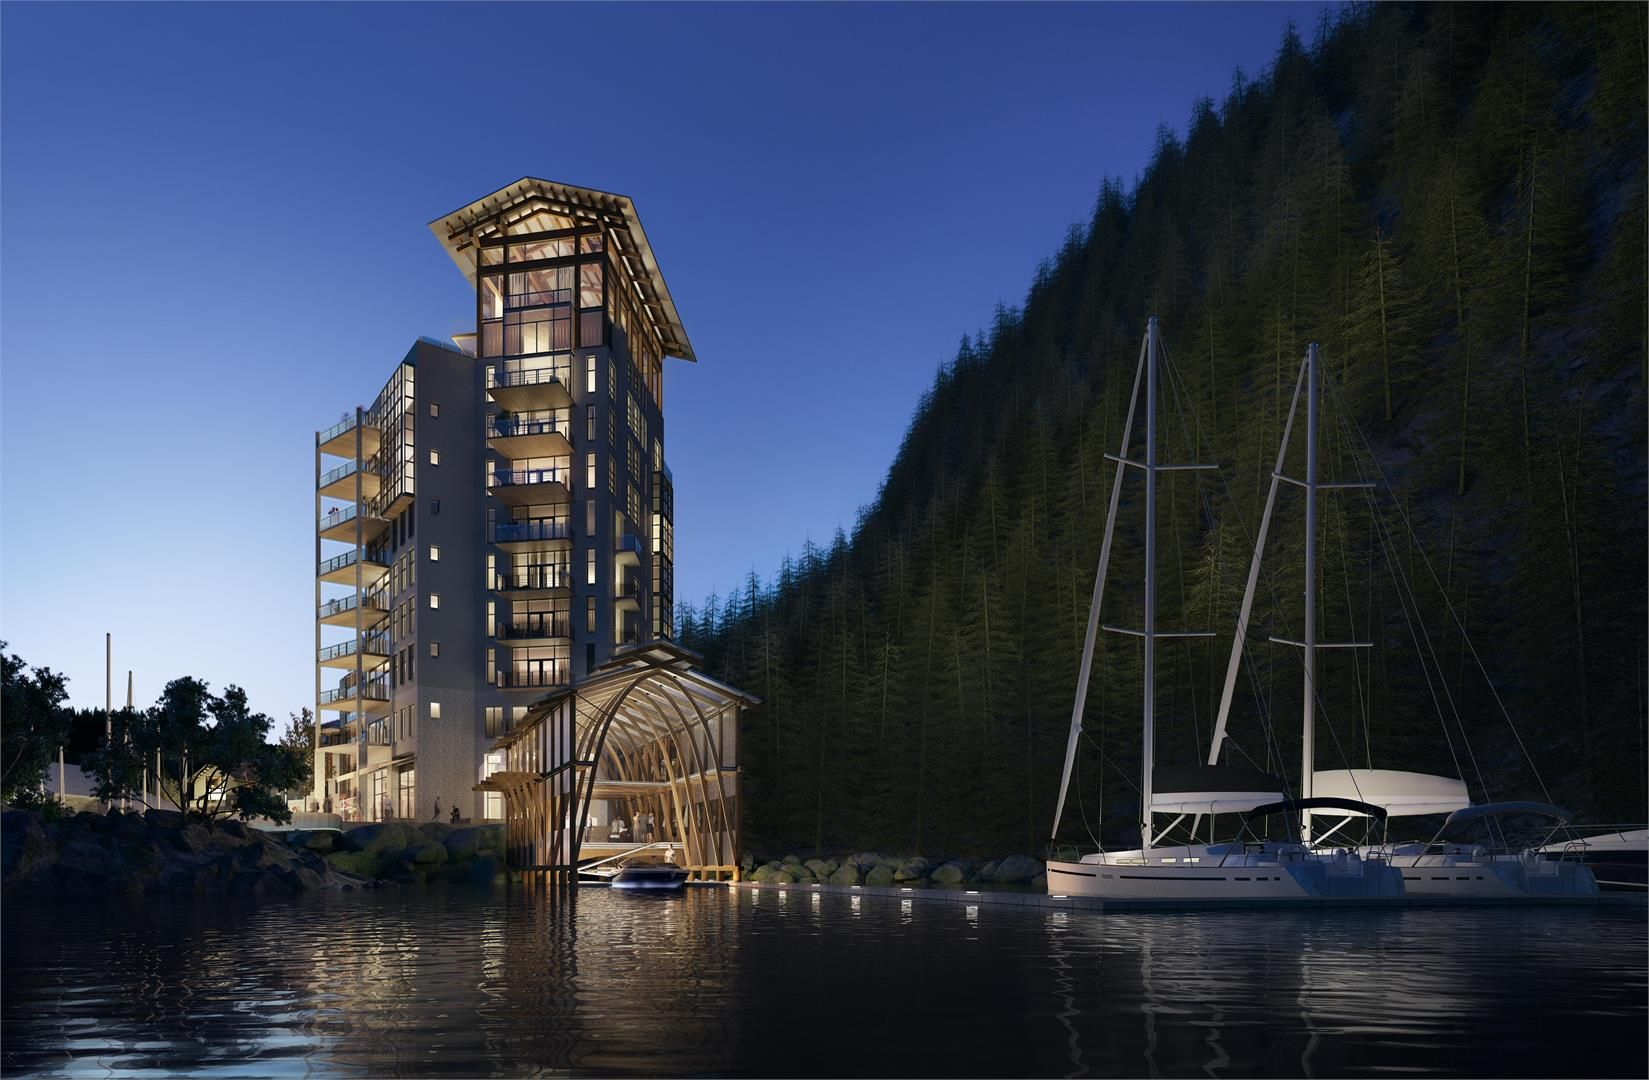 Main Photo: 6707 Nelson Avenue in West Vancouver: Horseshoe Bay WV Condo for sale